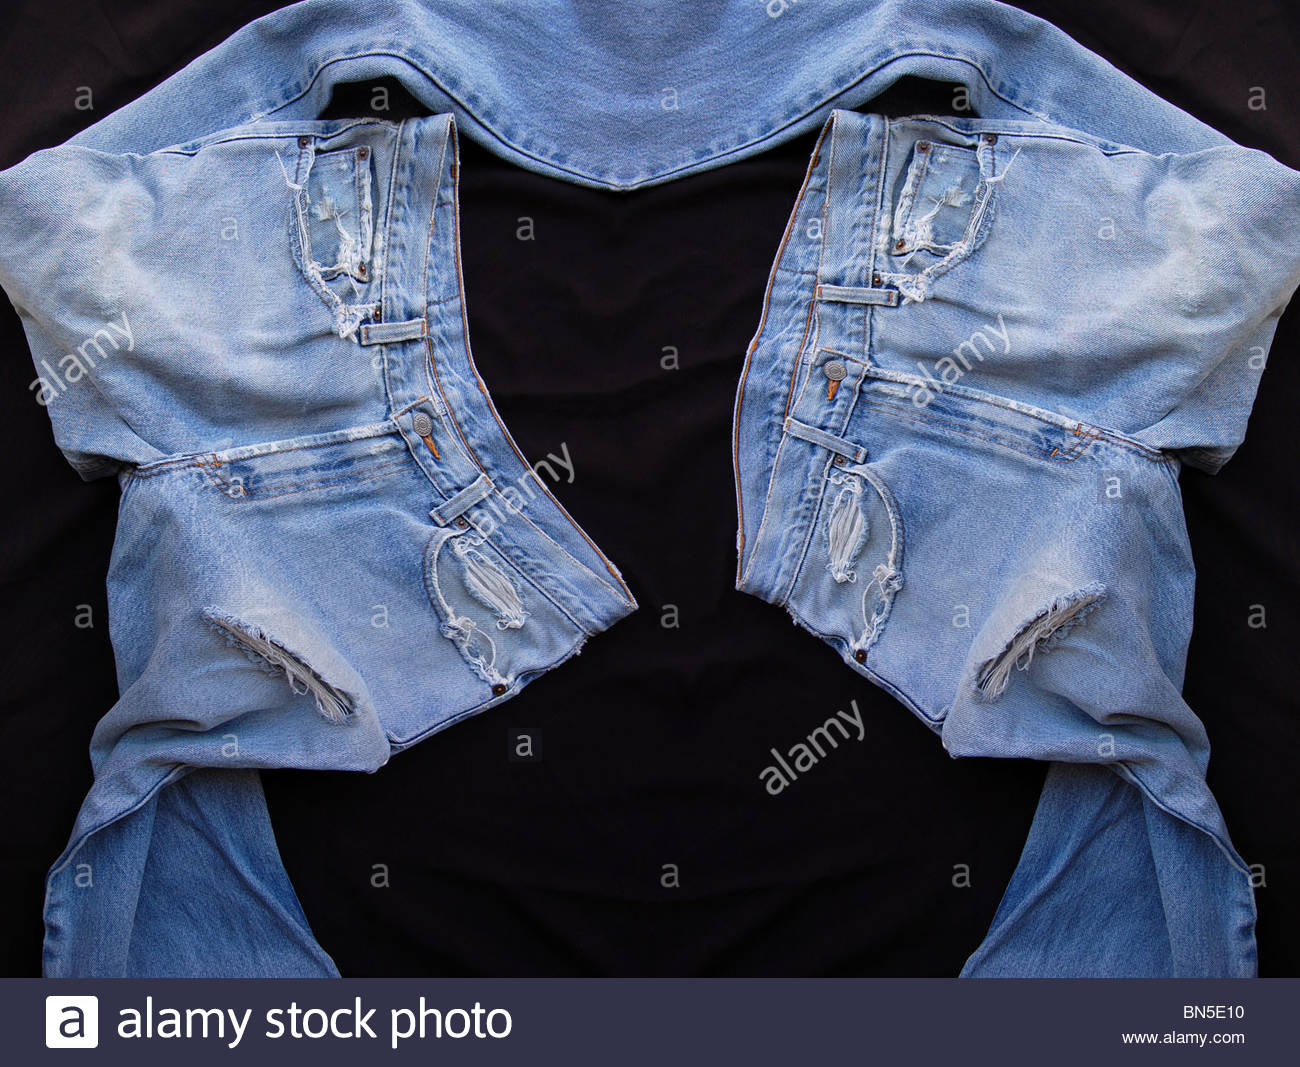 1de0ed2b7bc tabletop birds eye view two pair old used worn torn indigo blue denim jeans  pants on black background showing thread bare fabric